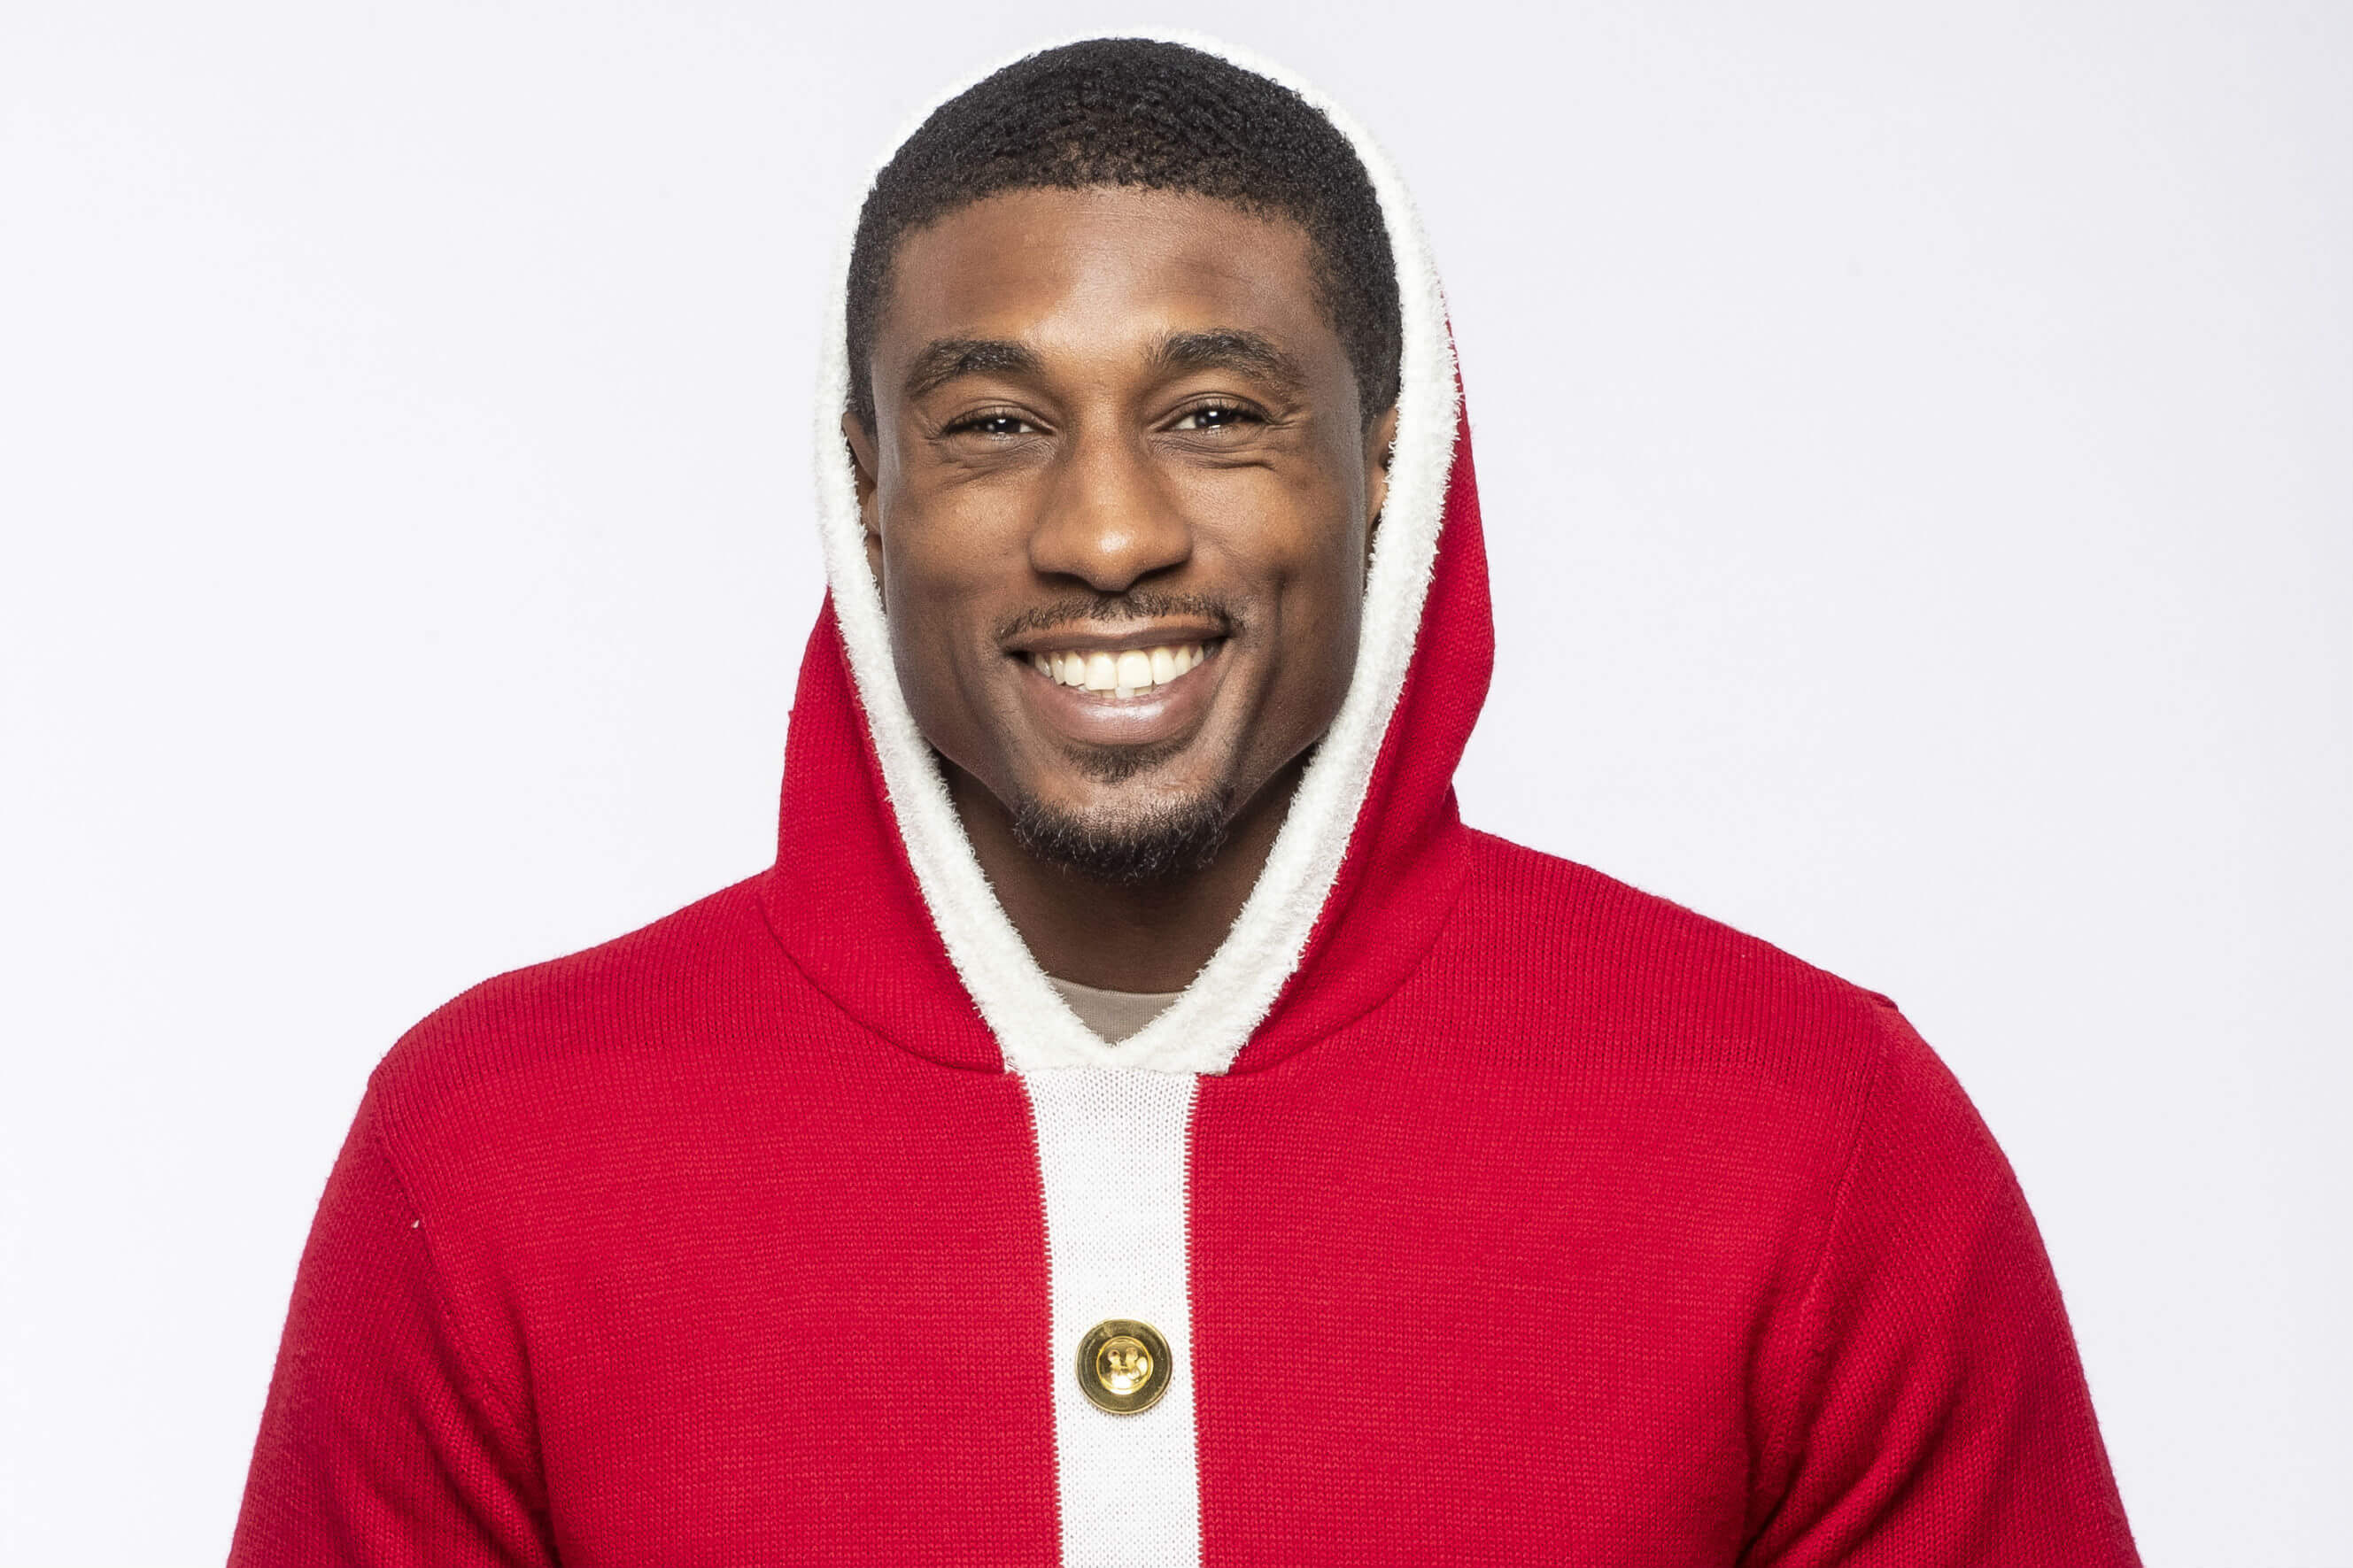 Love Islands Ovie puts on his Christmas Jumper for Save the Children's Christmas Jumper Day.